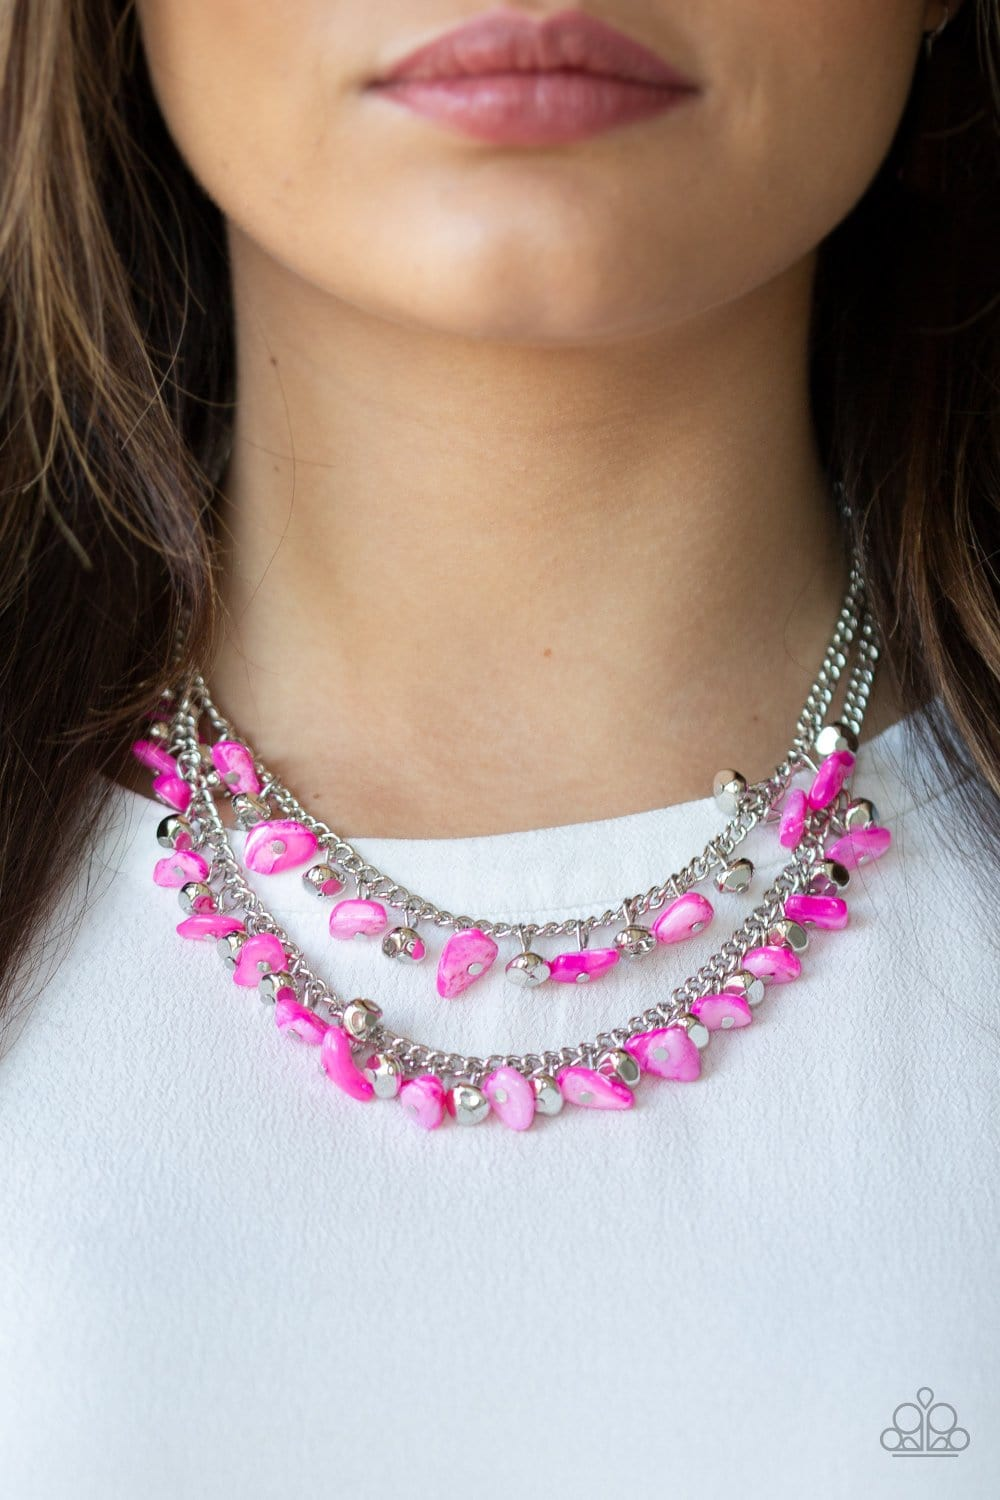 Paparazzi: Pebble Pioneer - Pink Necklace - Jewels N' Thingz Boutique